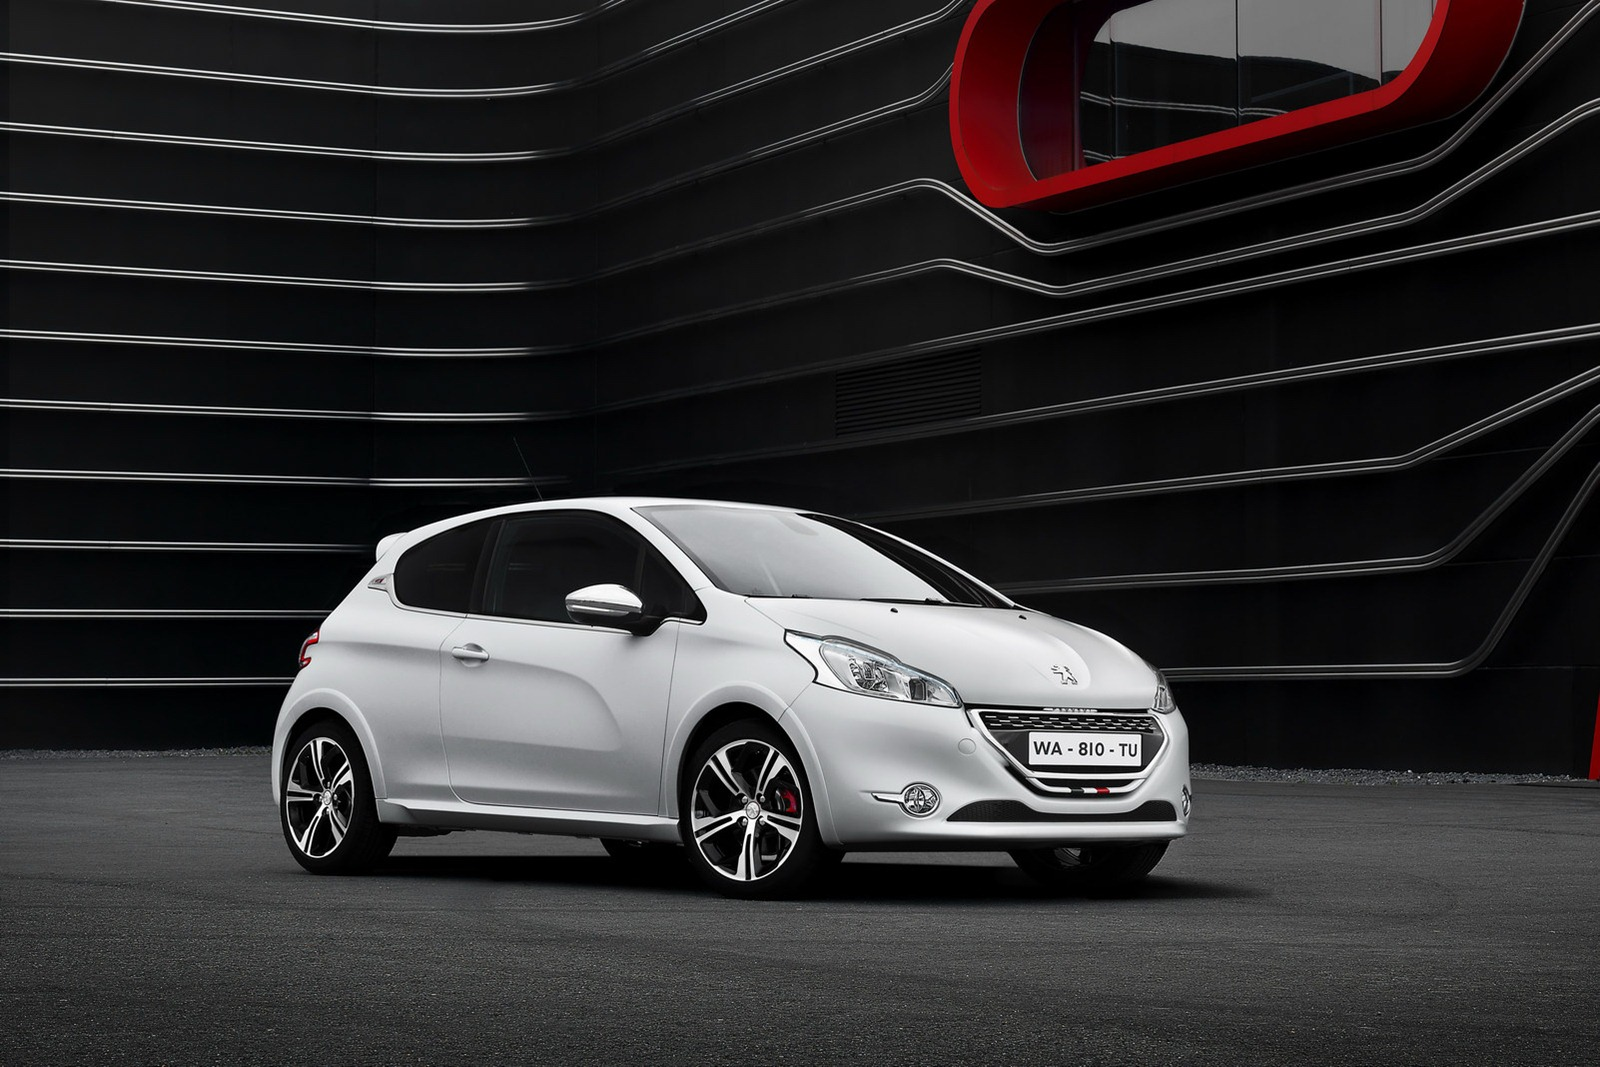 News: 2013 208 GTi Unveiled